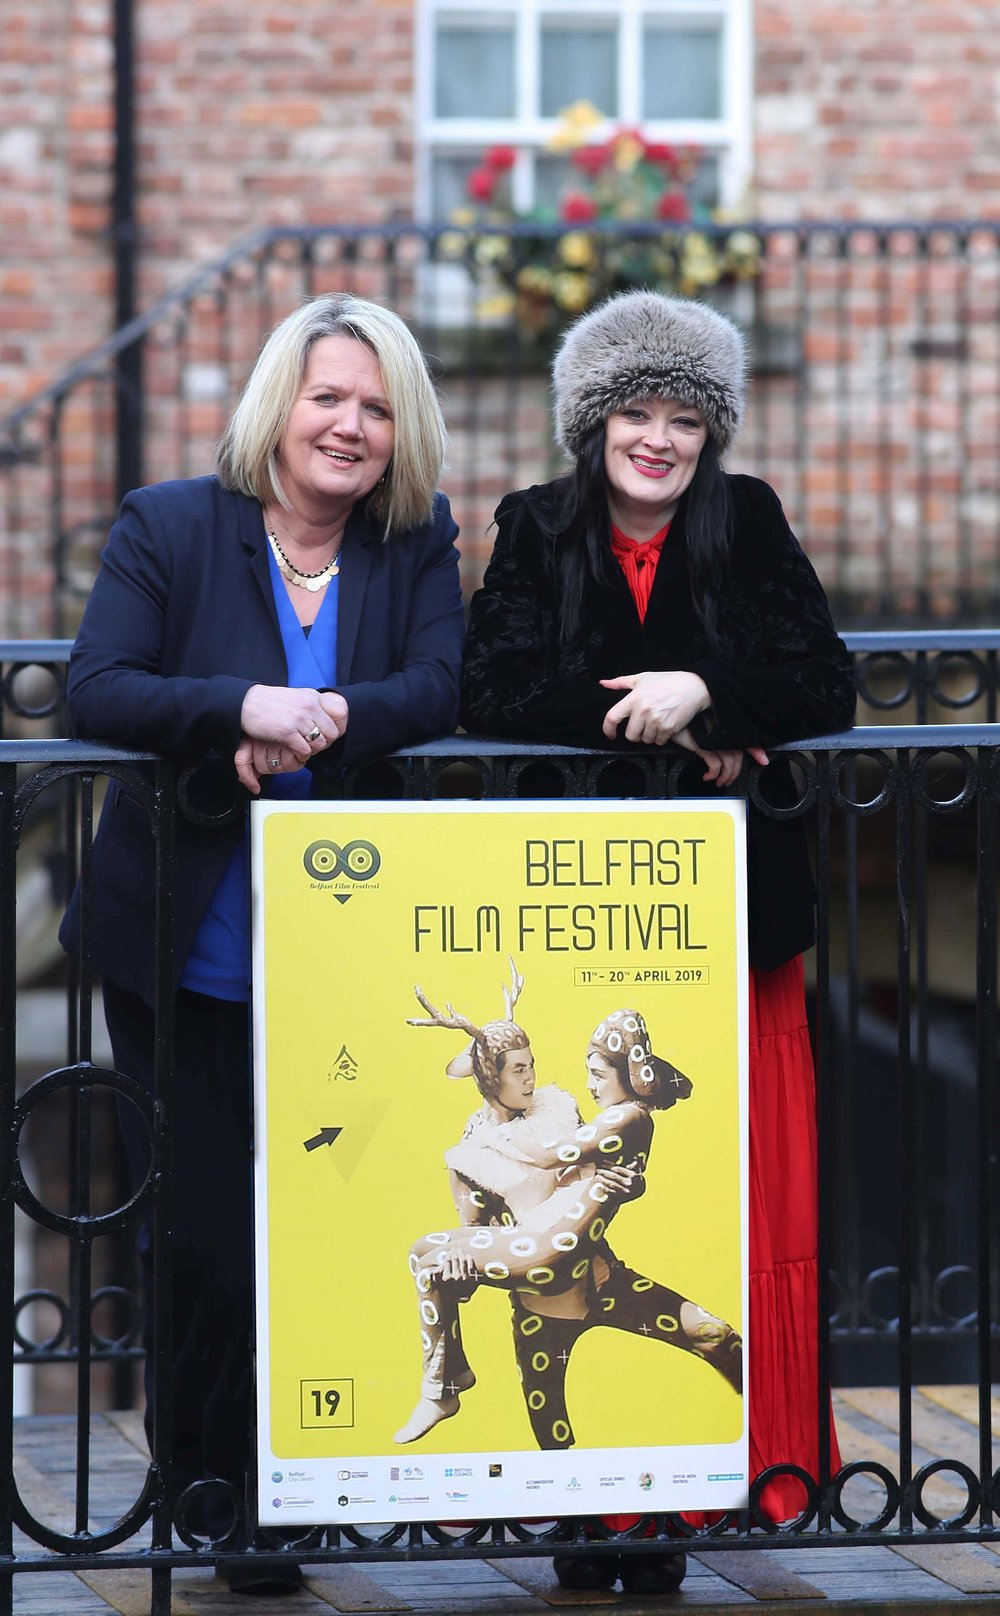 """Michele Devlin, Festival Director of the Belfast Film Festival with Derry-born actress Bronagh Gallagher, who stars in """"A Bump Along the Way"""" which will be shown on the opening night of the 2019 Belfast Film Festival."""